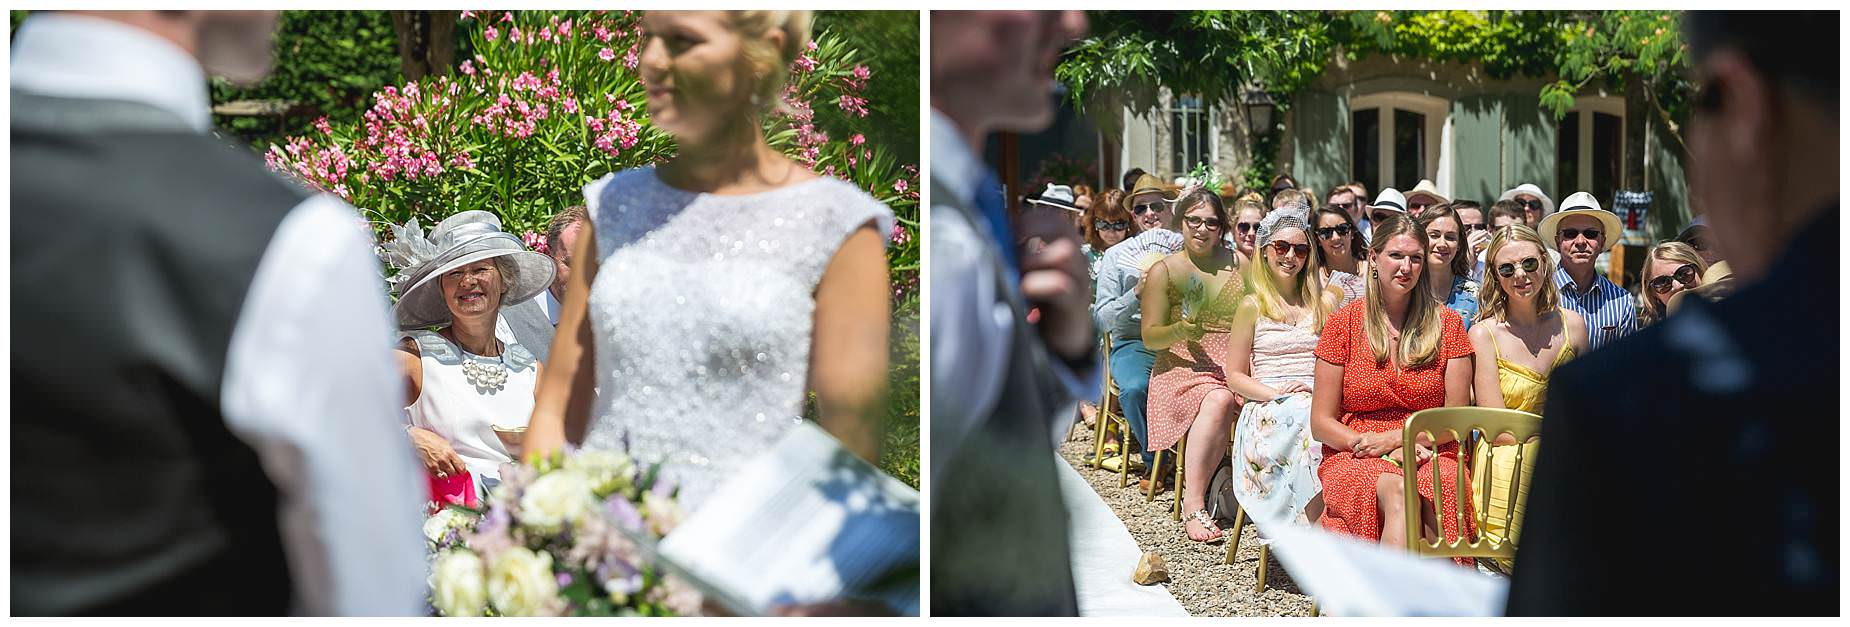 guests watch wedding at Villa Rouge wedding